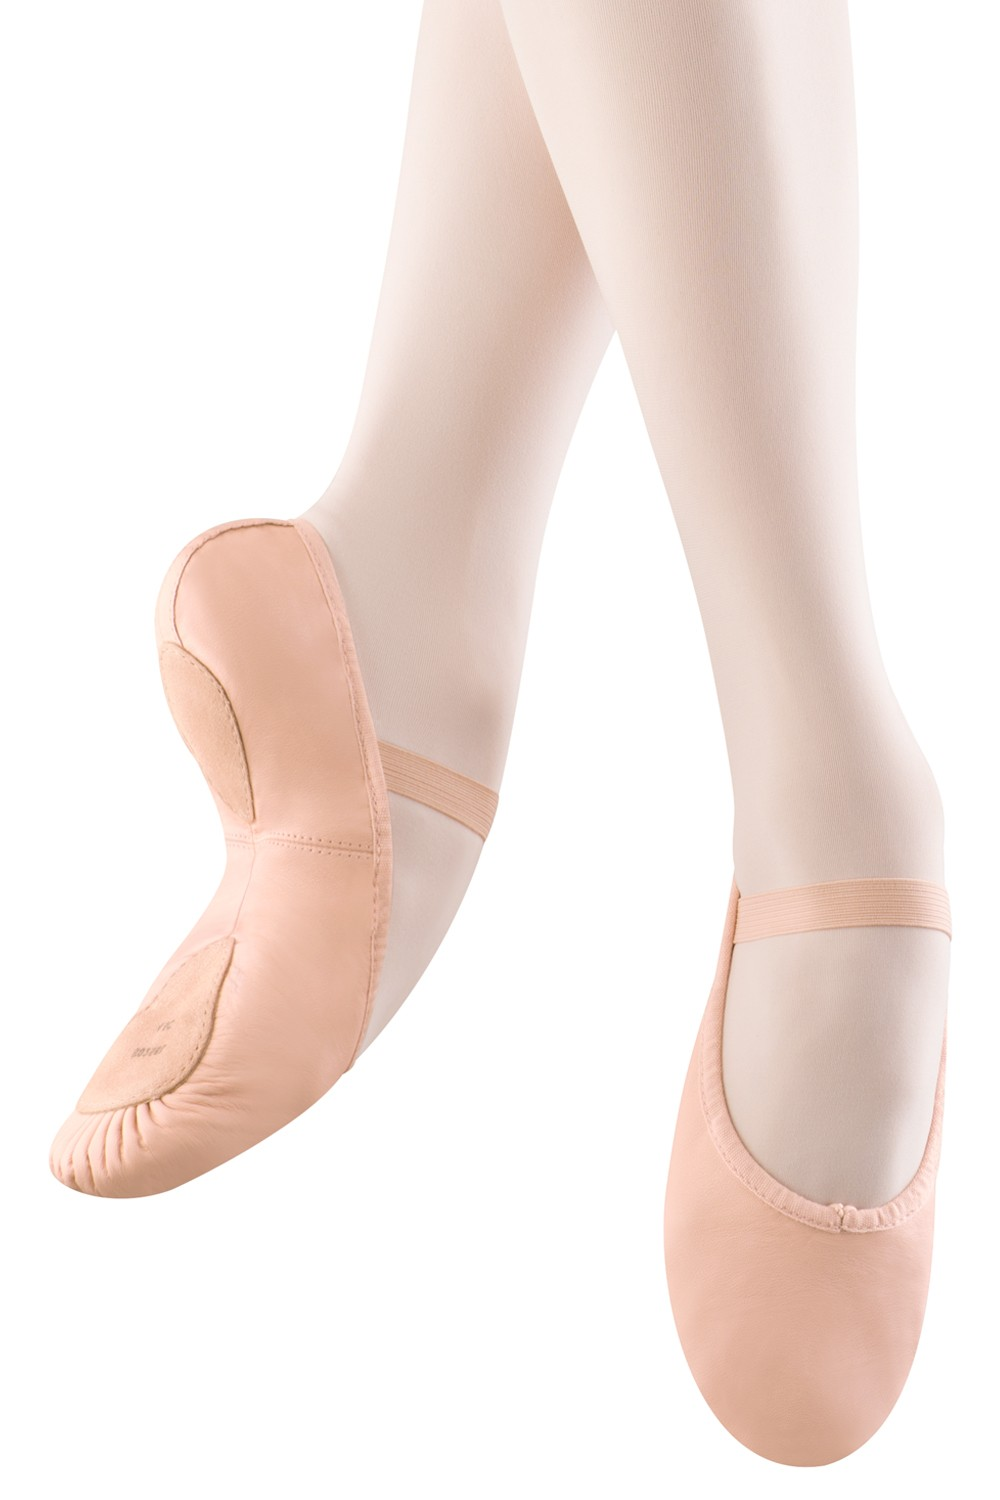 Dansoft Spilt Sole  Women's Ballet Shoes